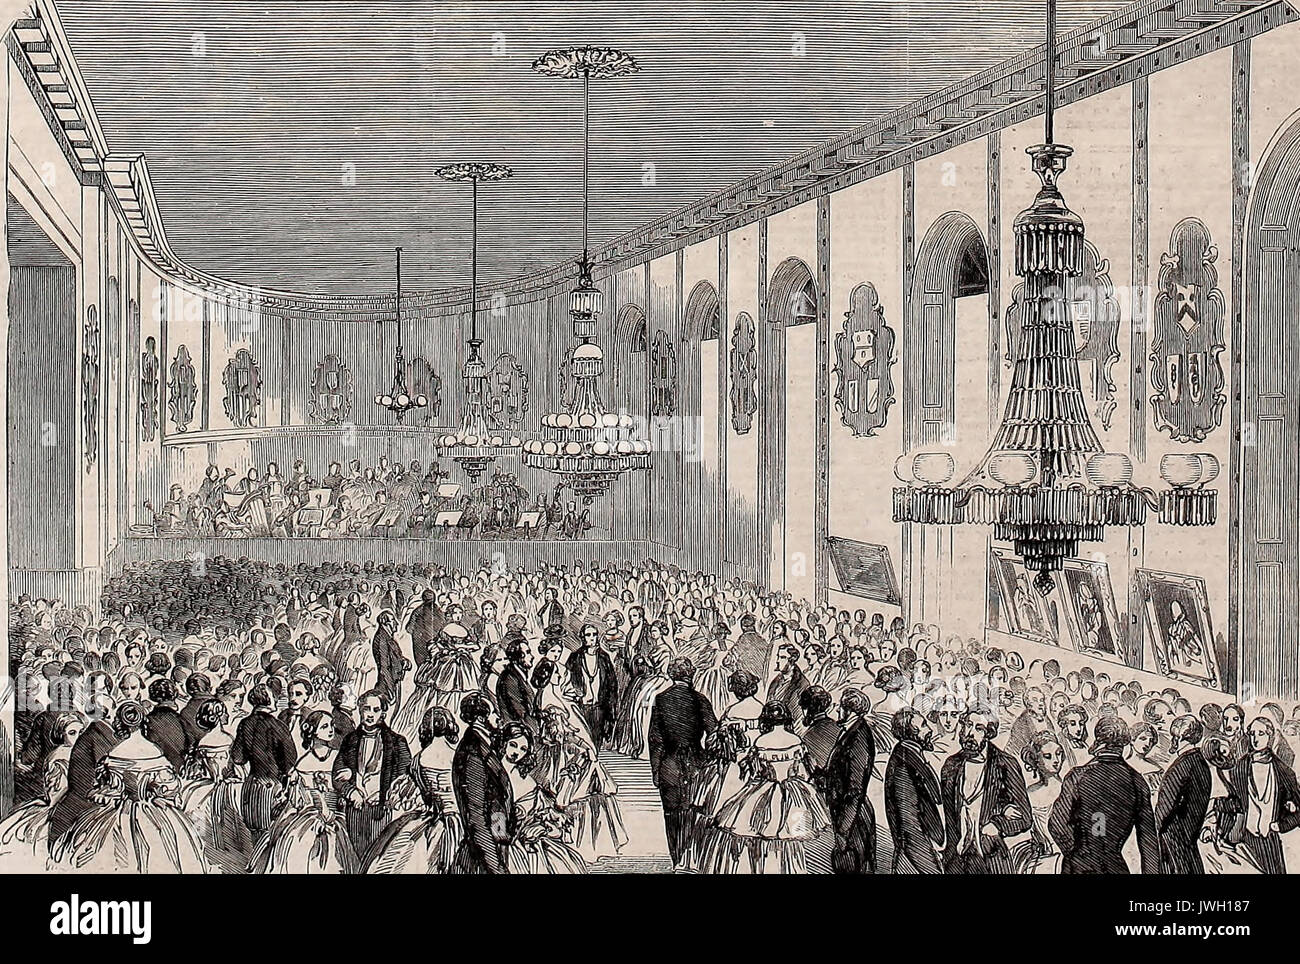 Ball at the Townhall, Oxford, in aid of the Widow and Orphans Fund of the Great Western Railway Company, 1860 - Stock Image